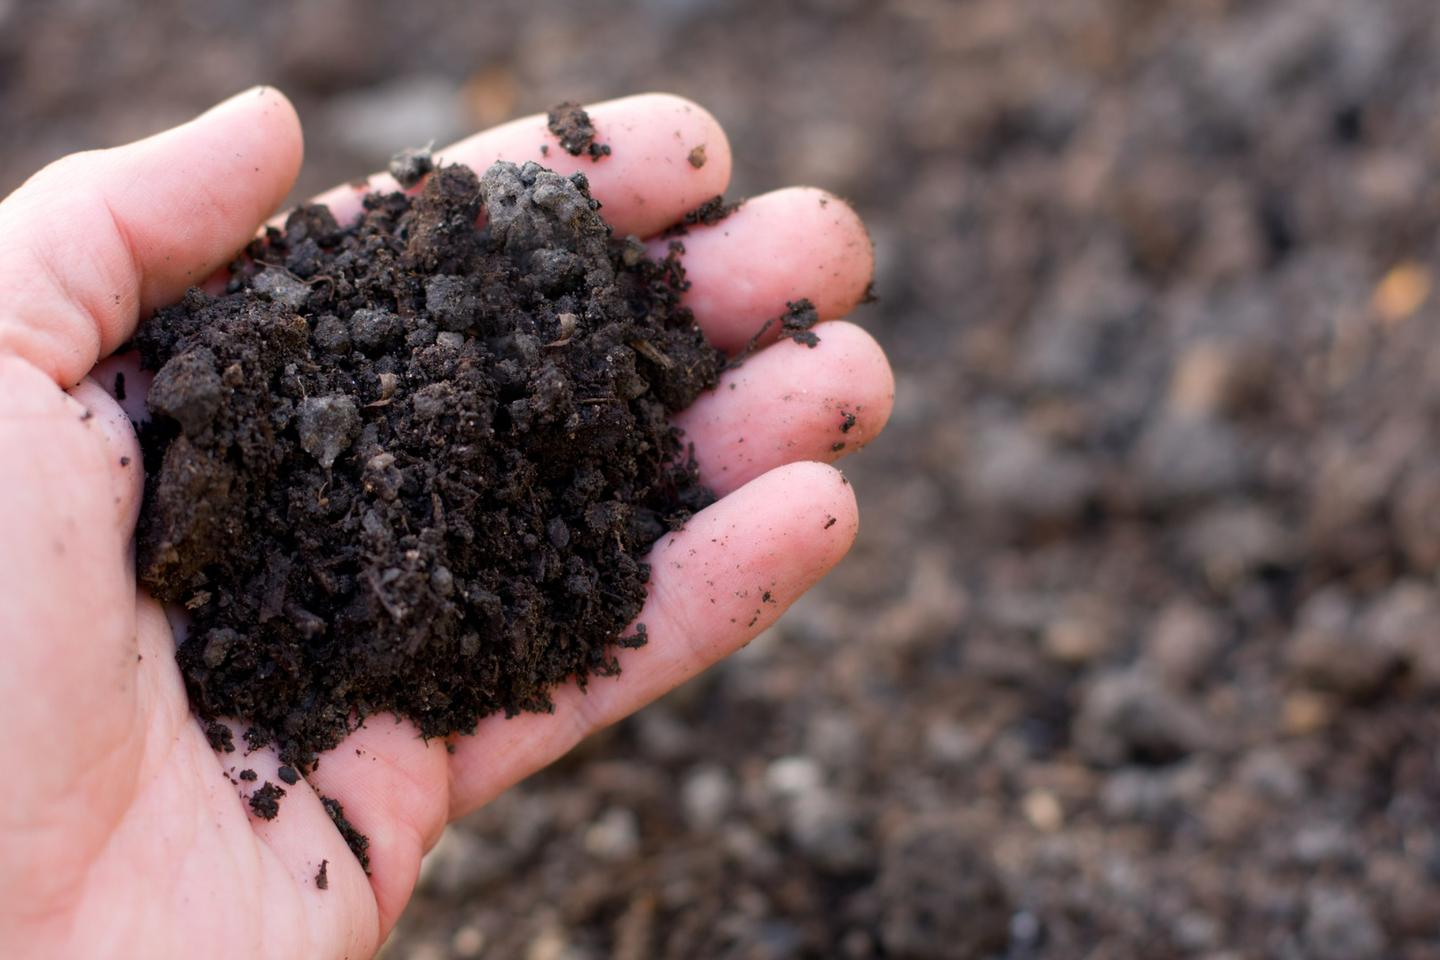 Years of research have revealed how a certain bacteria, found in dirt, can confer inflammatory effects in human beings